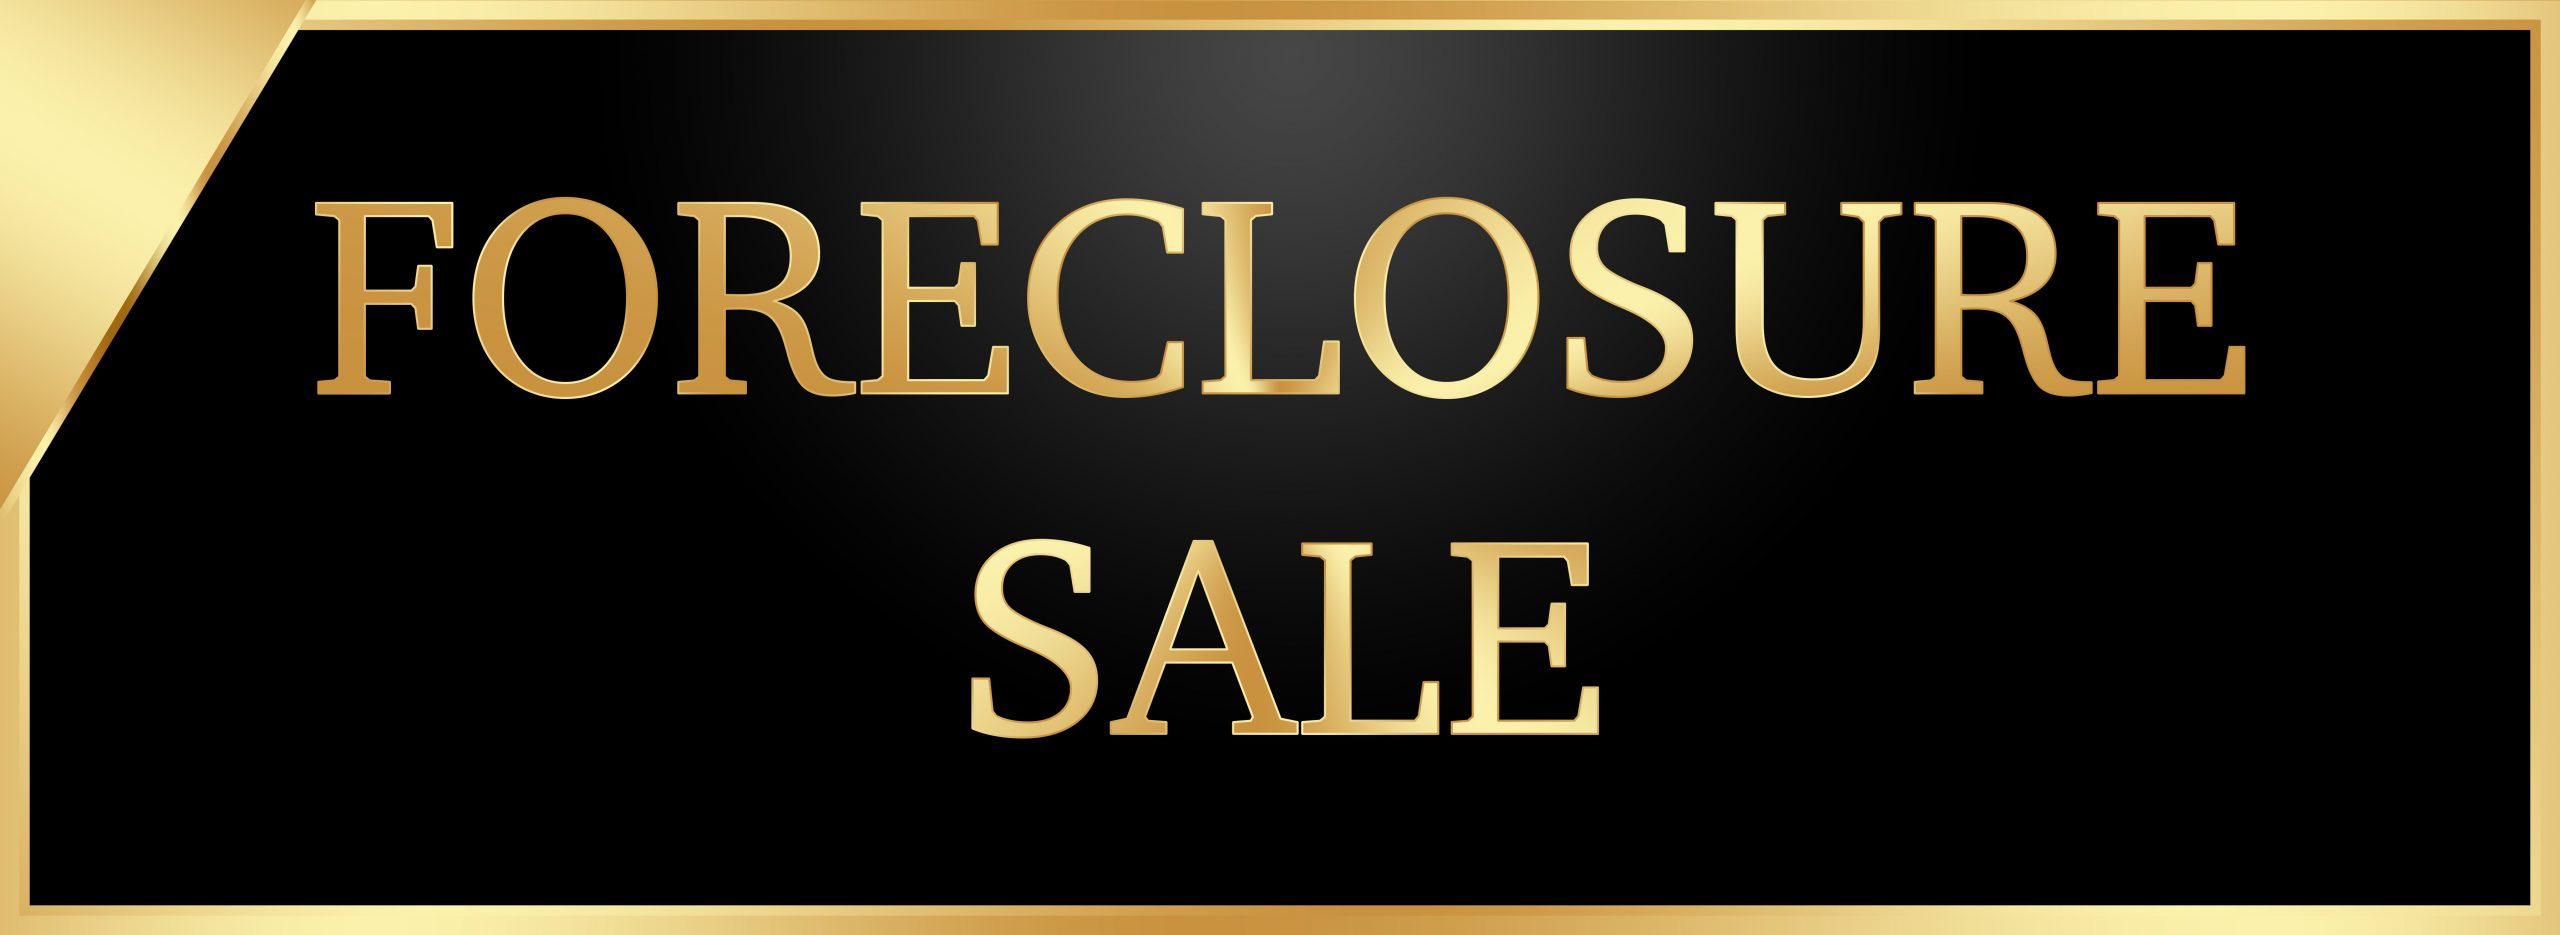 How Much Time Does a Homeowner Have if a Foreclosure Sale is Set